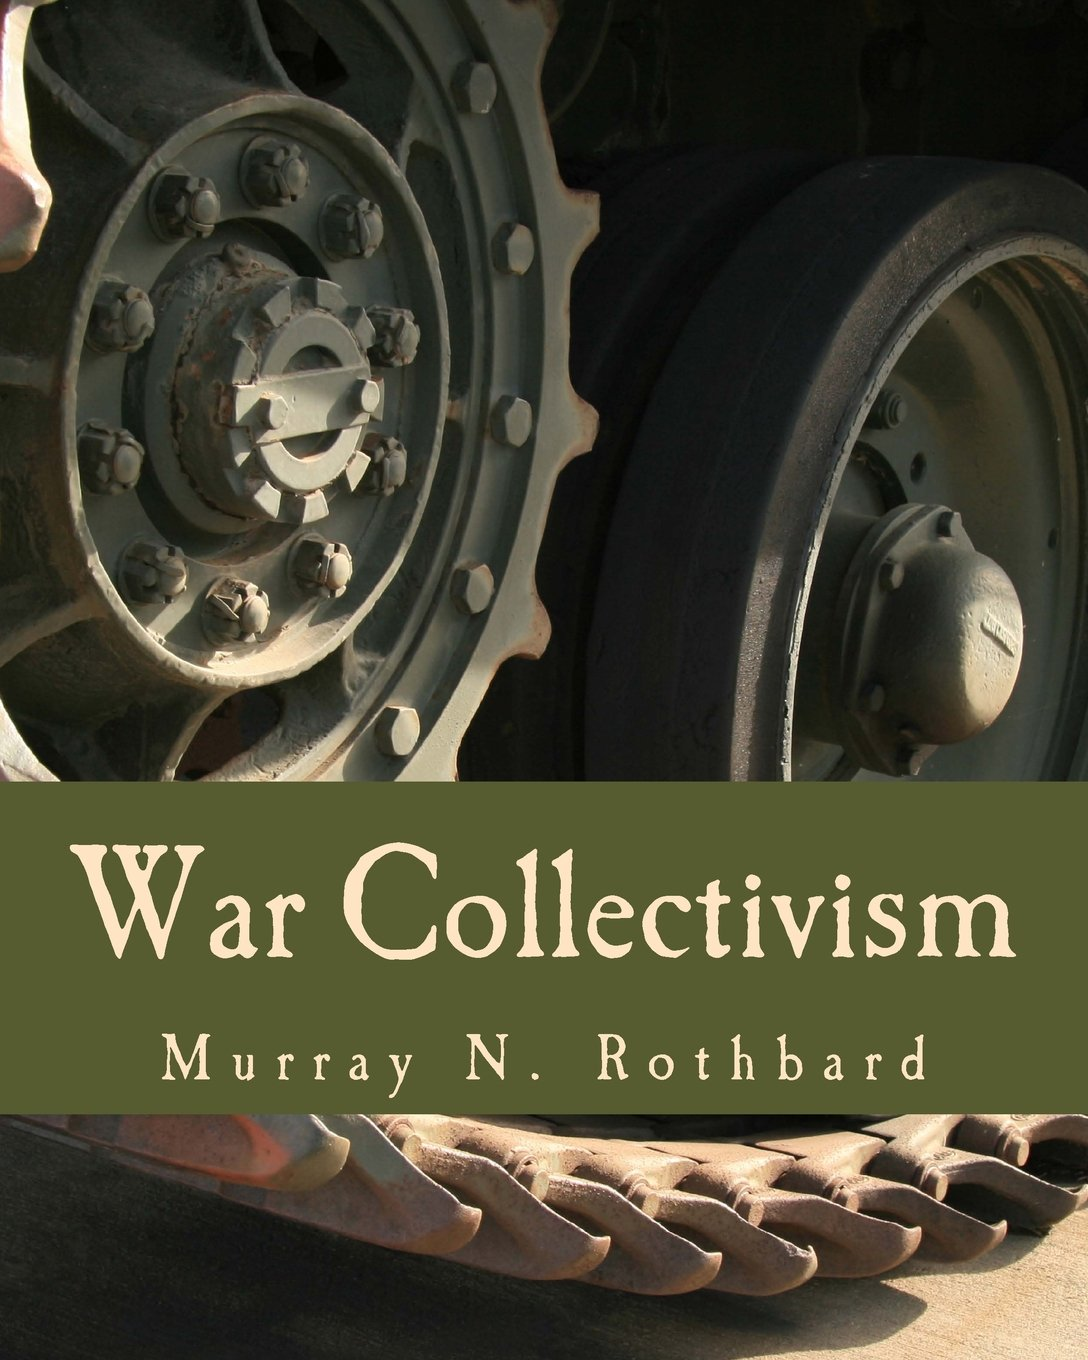 Download War Collectivism (Large Print Edition): Power, Business, and the Intellectual Class in World War I PDF